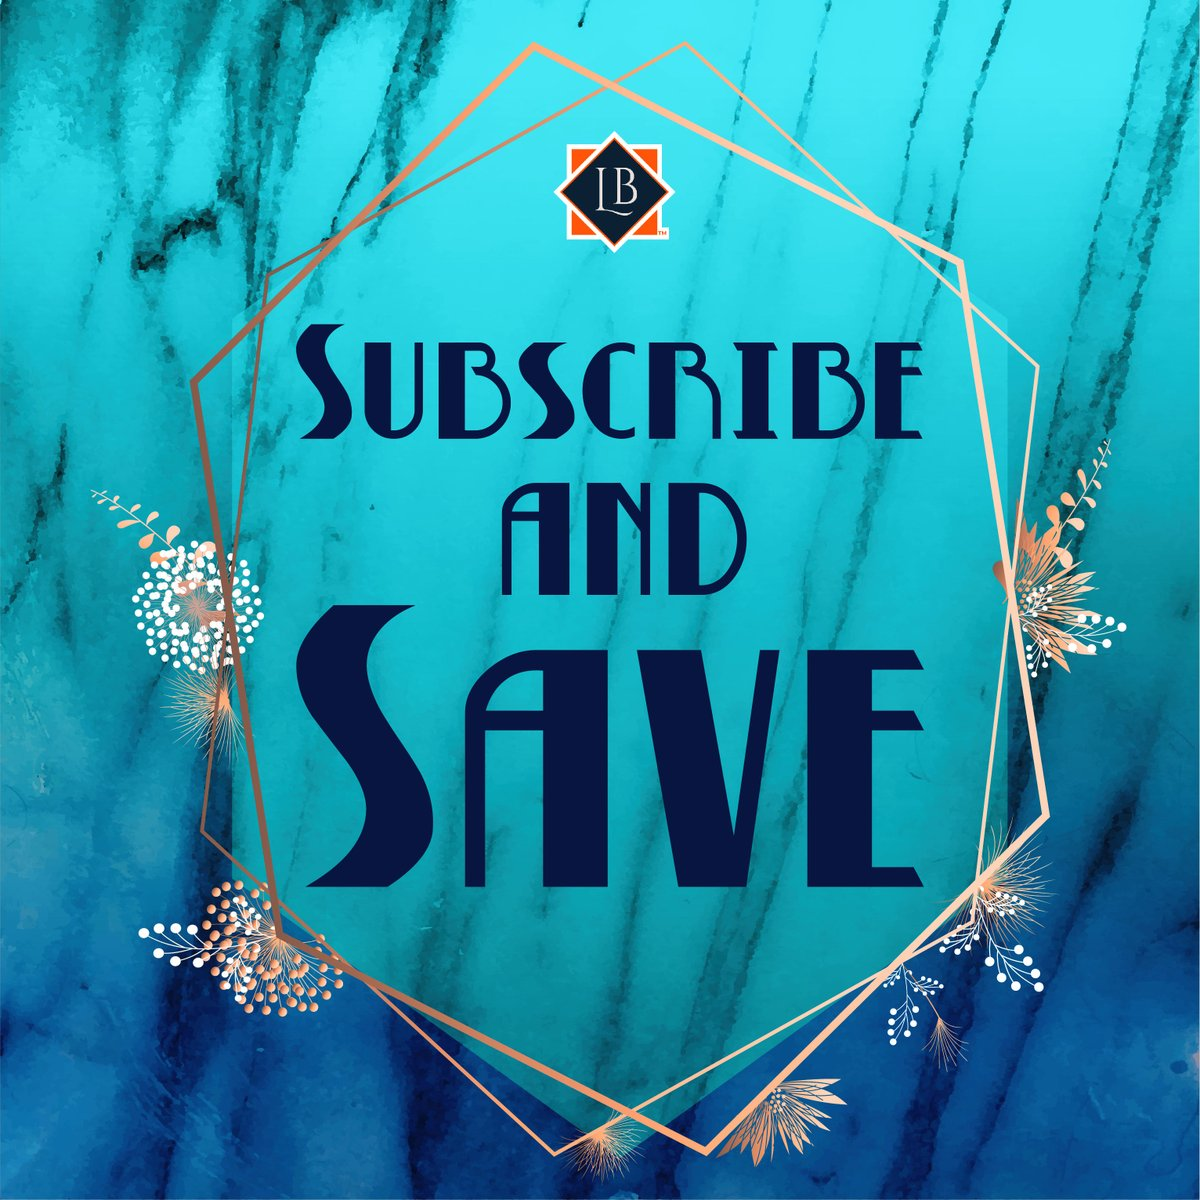 Subscribe for £12.99 and get entry to 4 auctions of your choice 💙  #win #winners #auctions #auction #subscribe #save #gold #luxury #lifestyle #floral #blue #teal #event #fashion #concert #holiday #trends #blog #blogger #lifestylebids